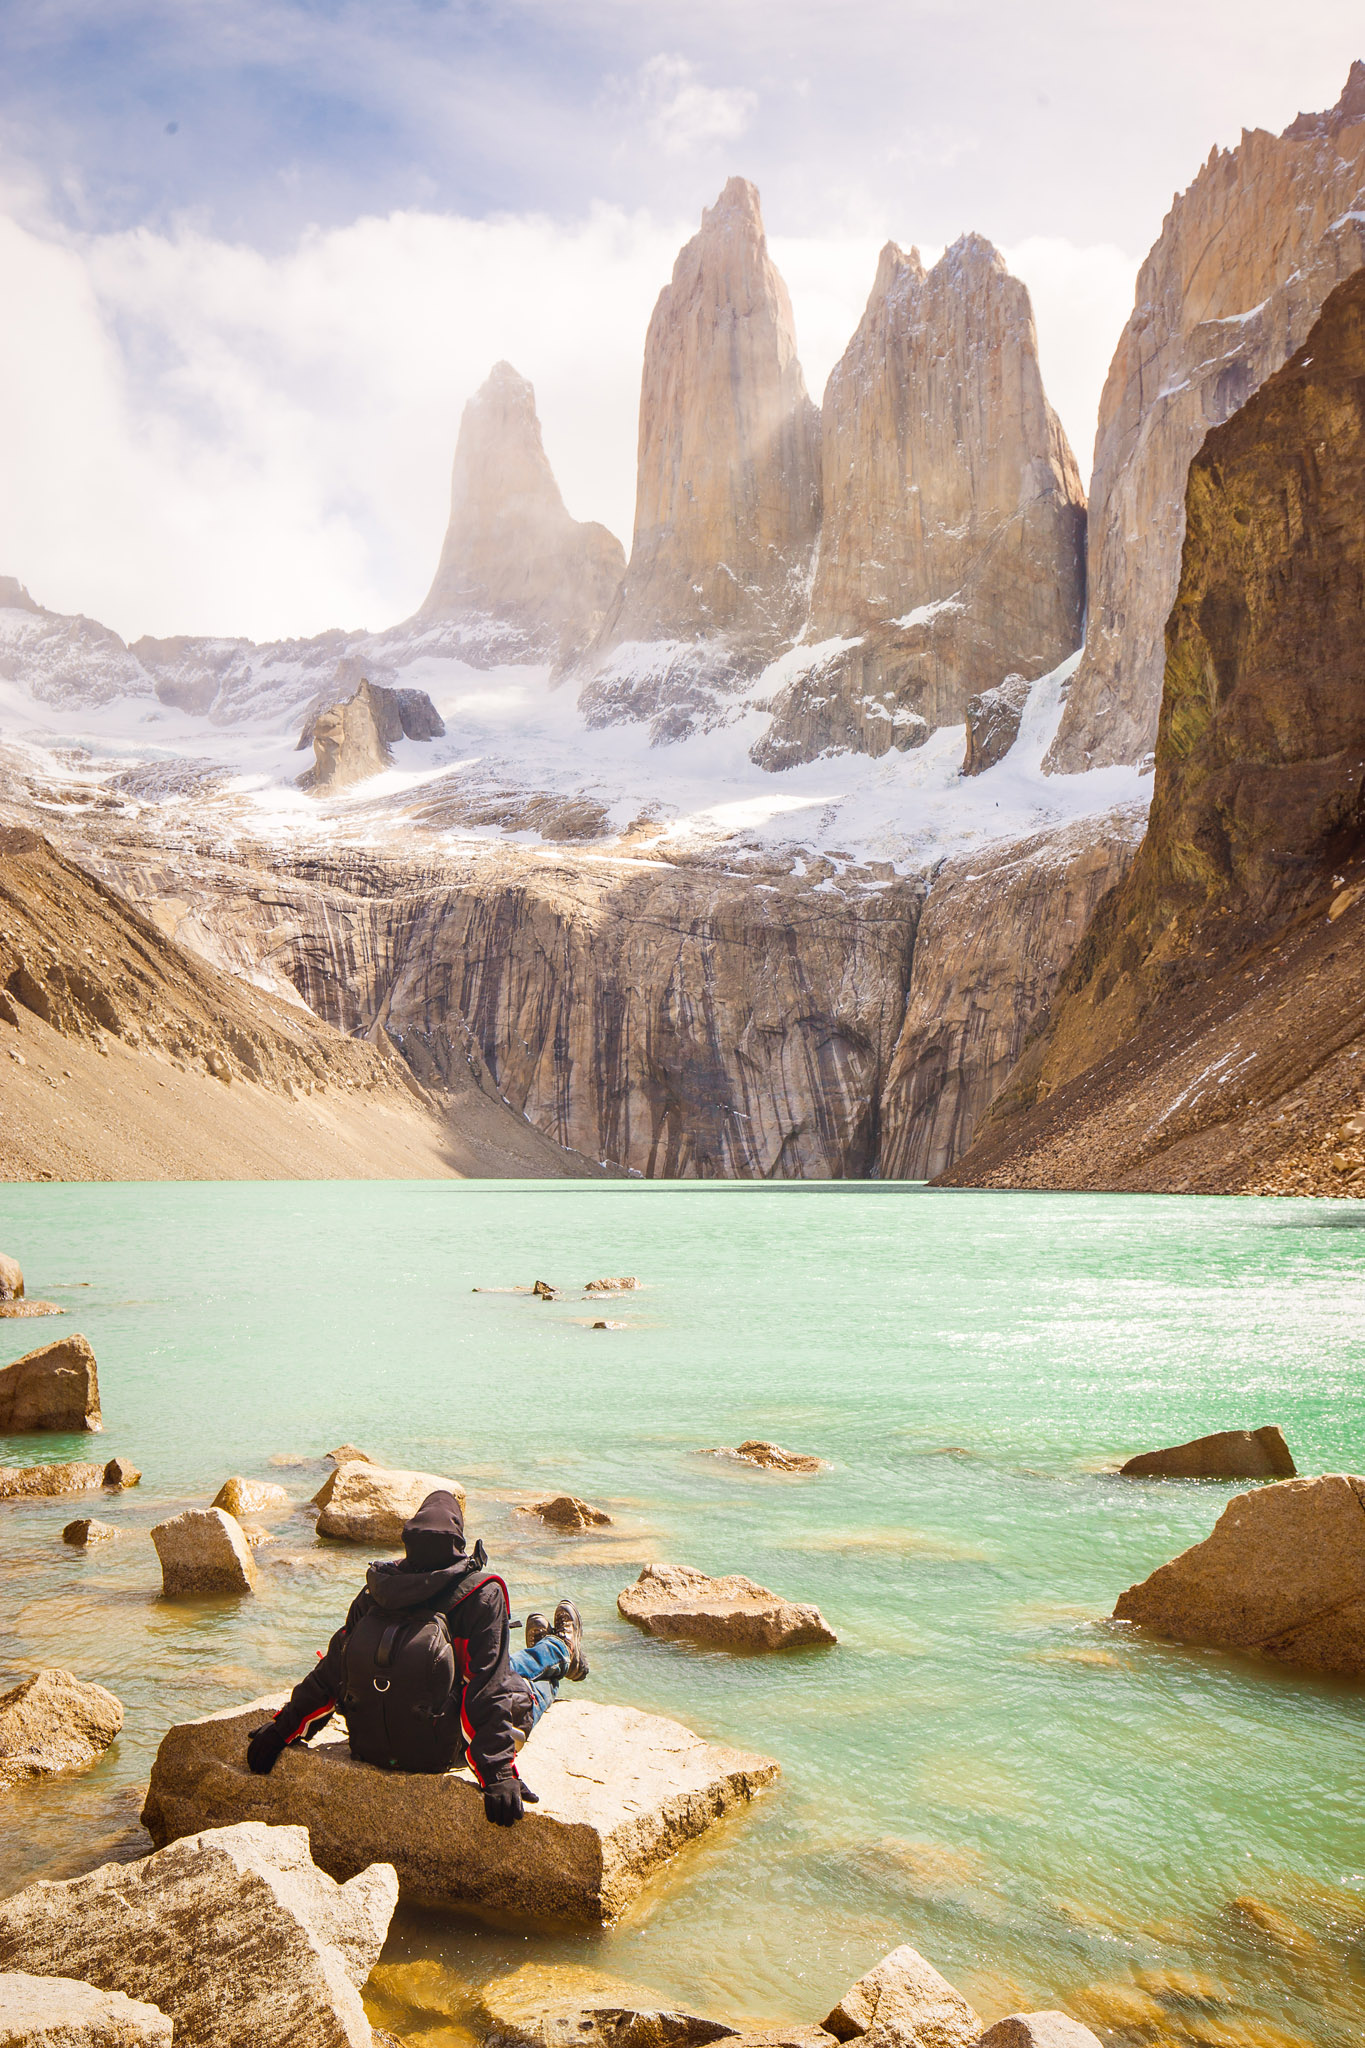 Wedding-Travellers-Overlanding-Destination-Wedding-Chile-Torres-del-Paine-Tres-Torres-Three-Towers-clouds-lake-emerald